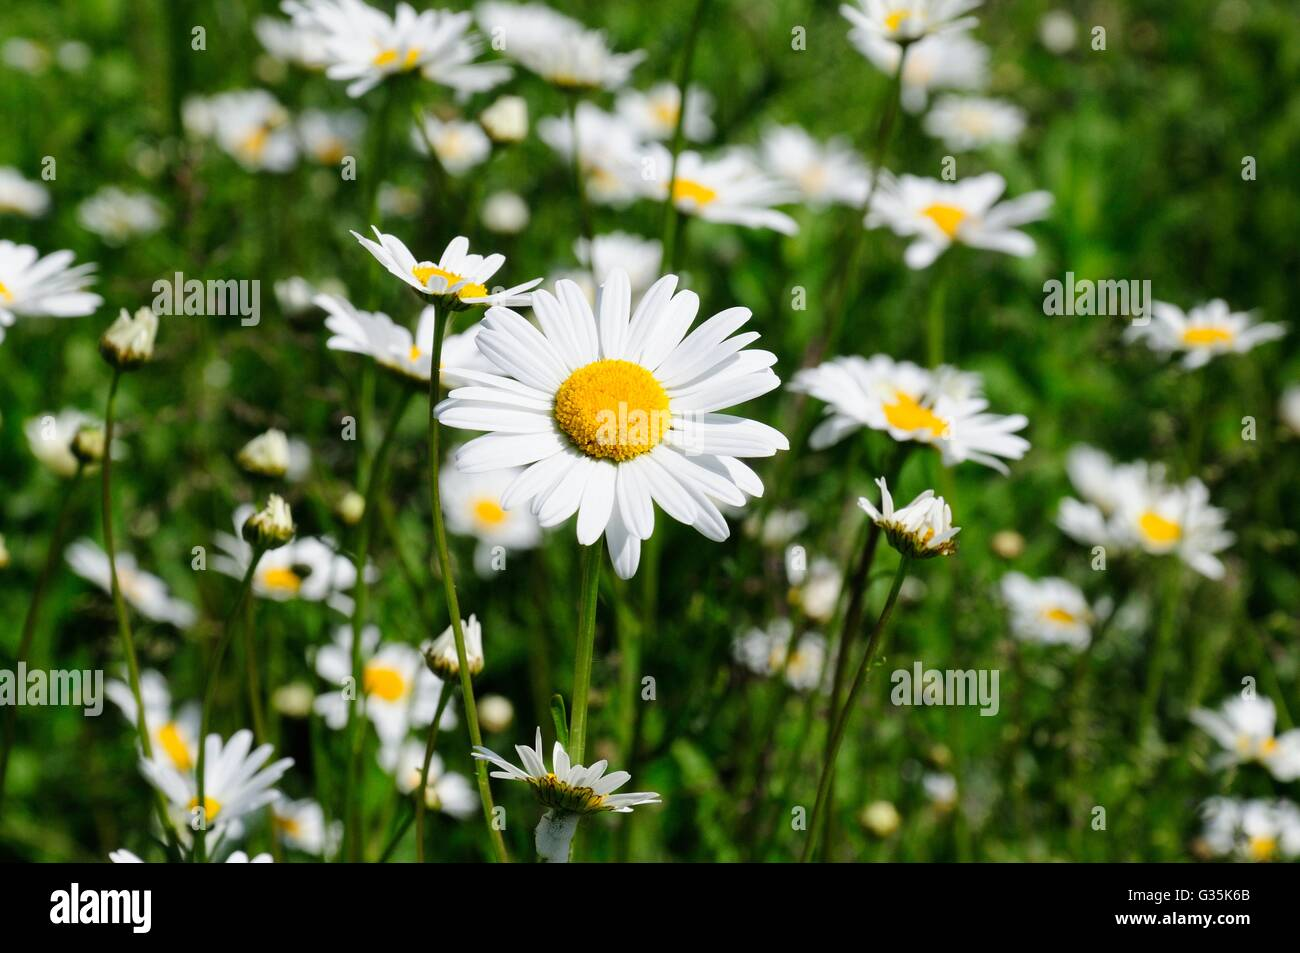 Ox eye dog daisies in a hedgerow with one daisy flower isolated ox eye dog daisies in a hedgerow with one daisy flower isolated leucanthemum vulgare chrysanthemum vulgare izmirmasajfo